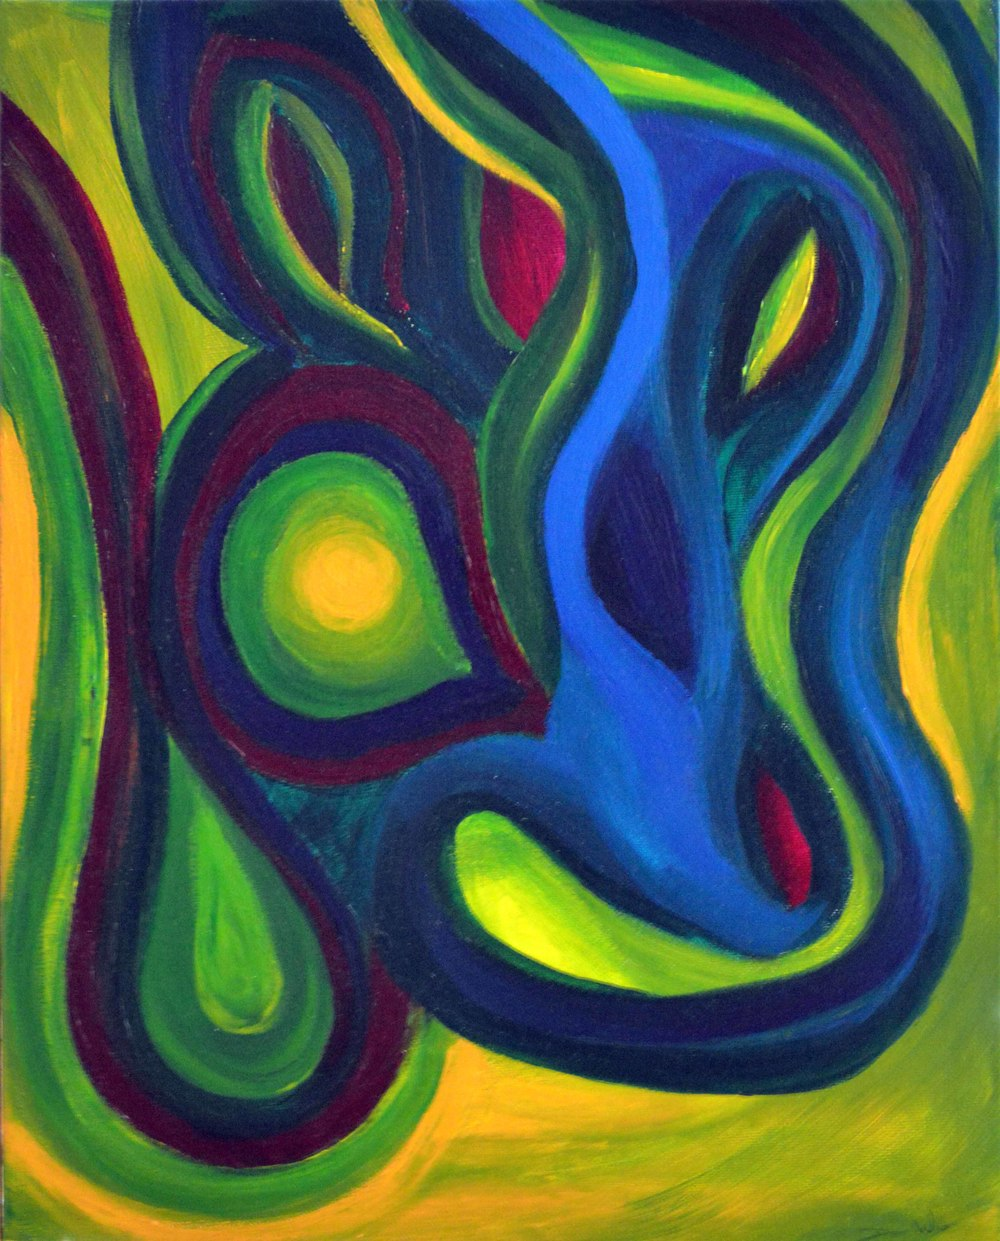 Emerald Dreams , 2012, Acrylic, 16 x 20 in